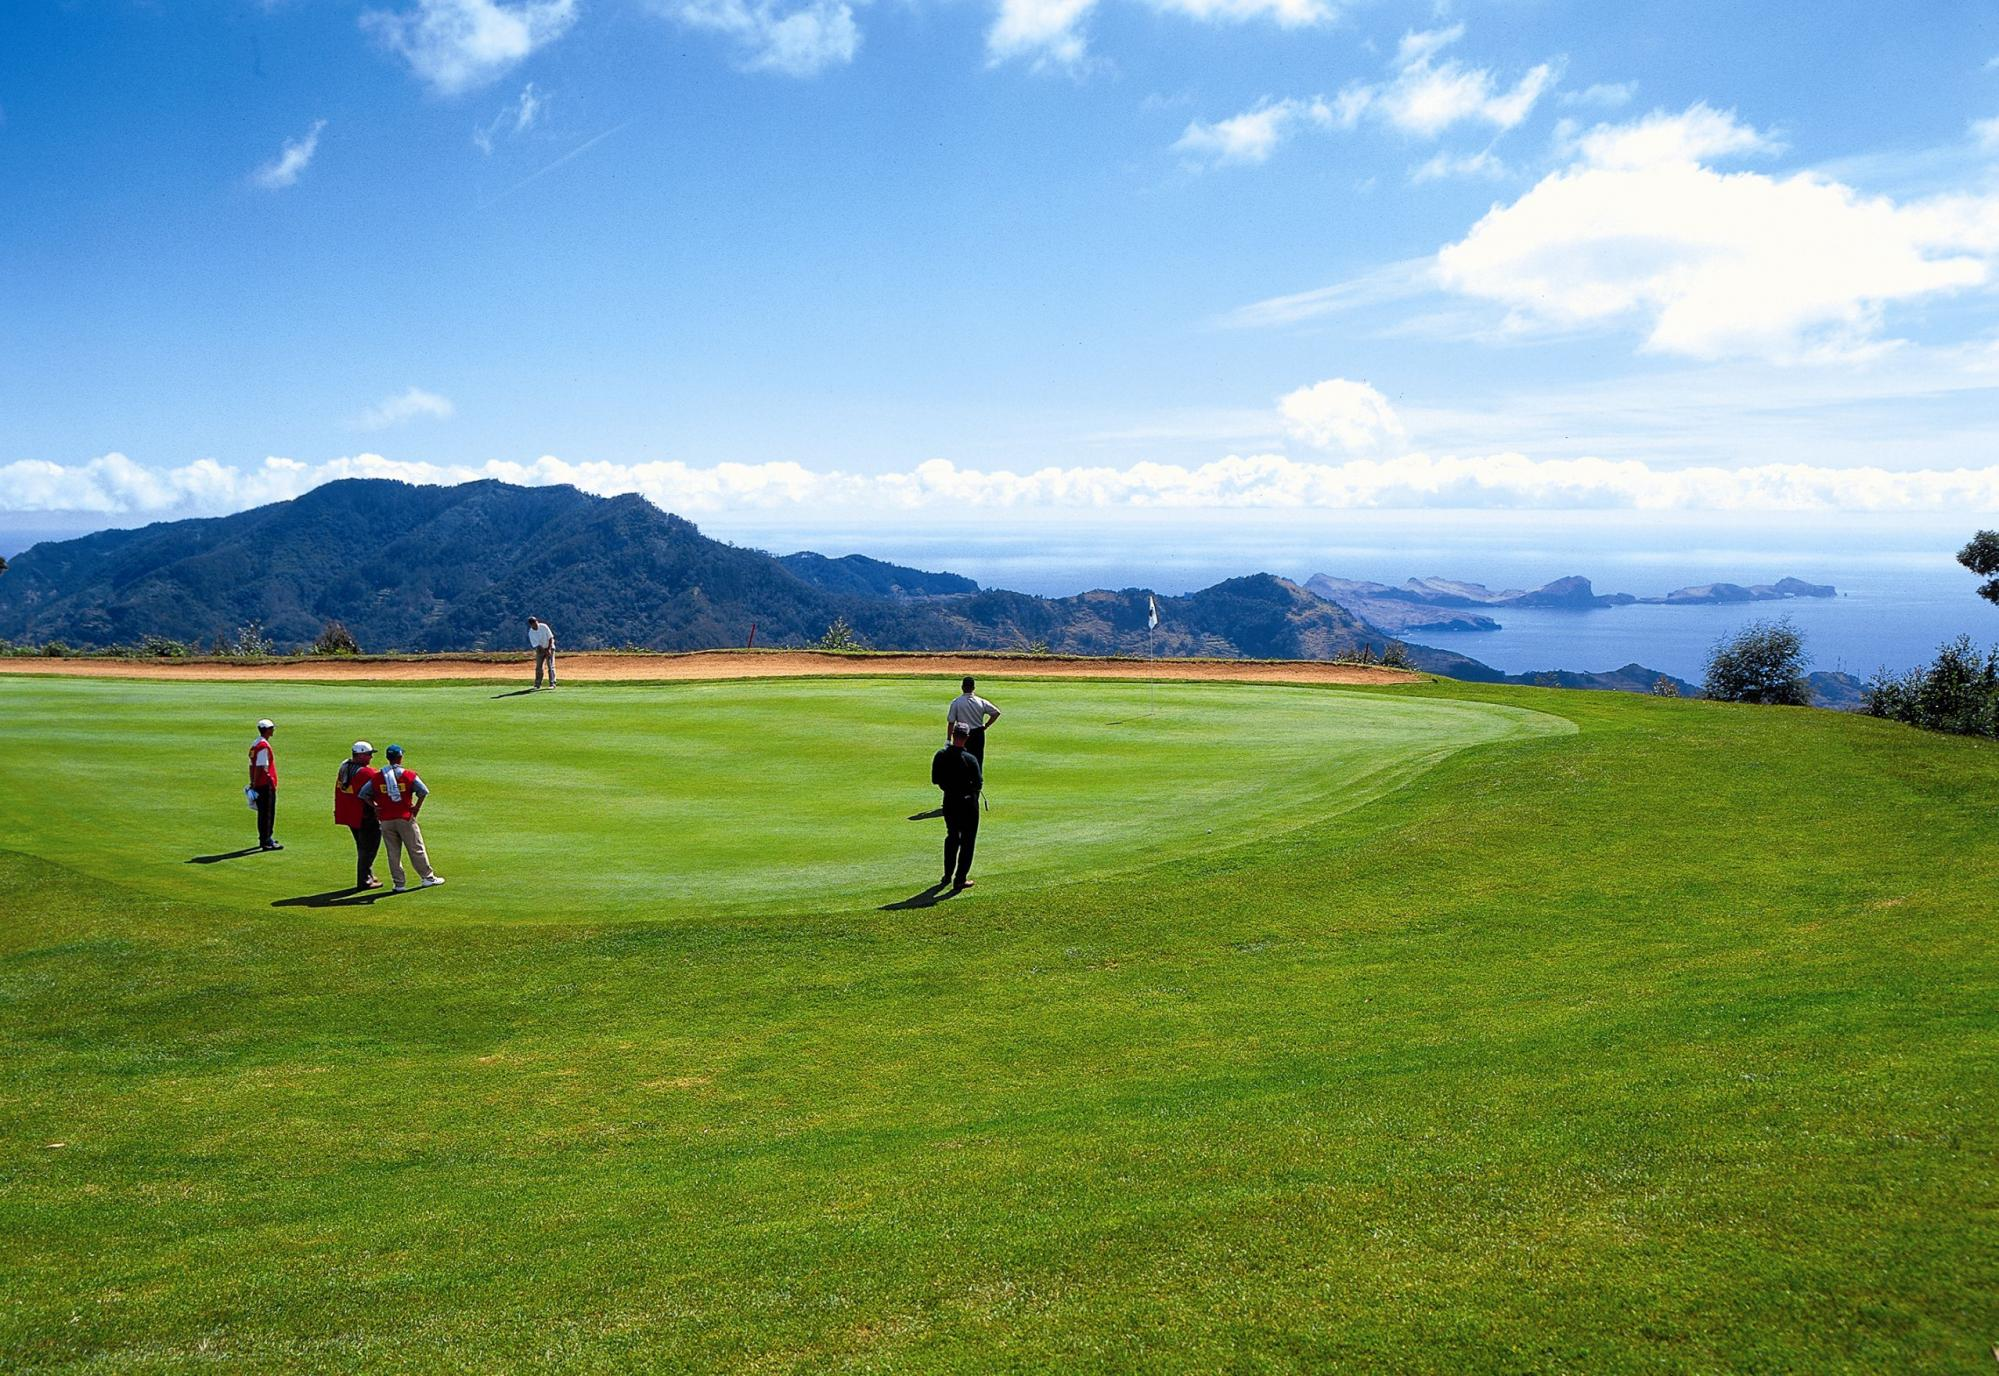 View Santo da Serra Golf Club's beautiful golf course situated in marvelous Madeira.